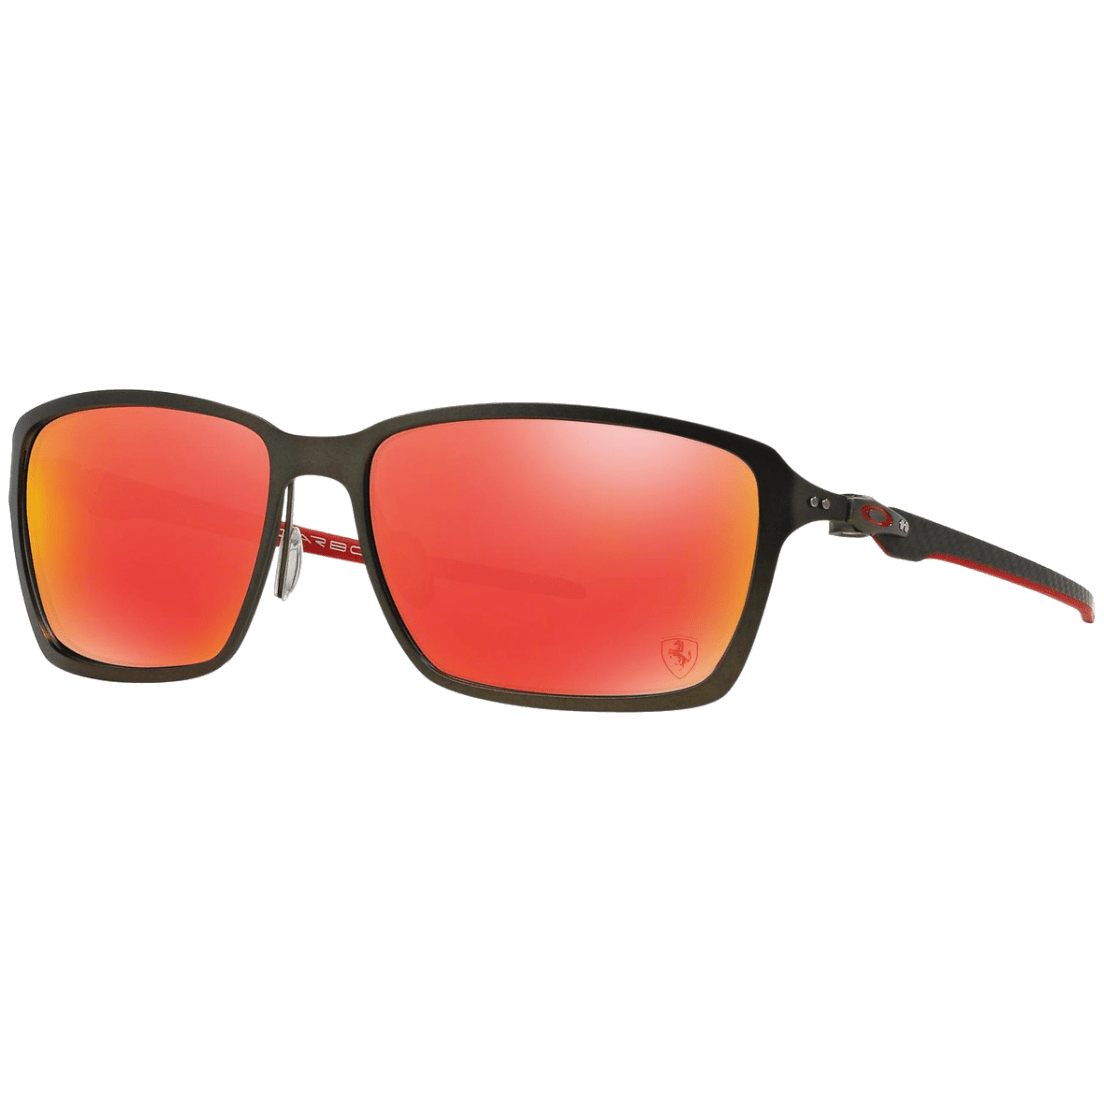 00aed767c8 Oakley Men s Ferrari Tincan Carbon Sunglasses